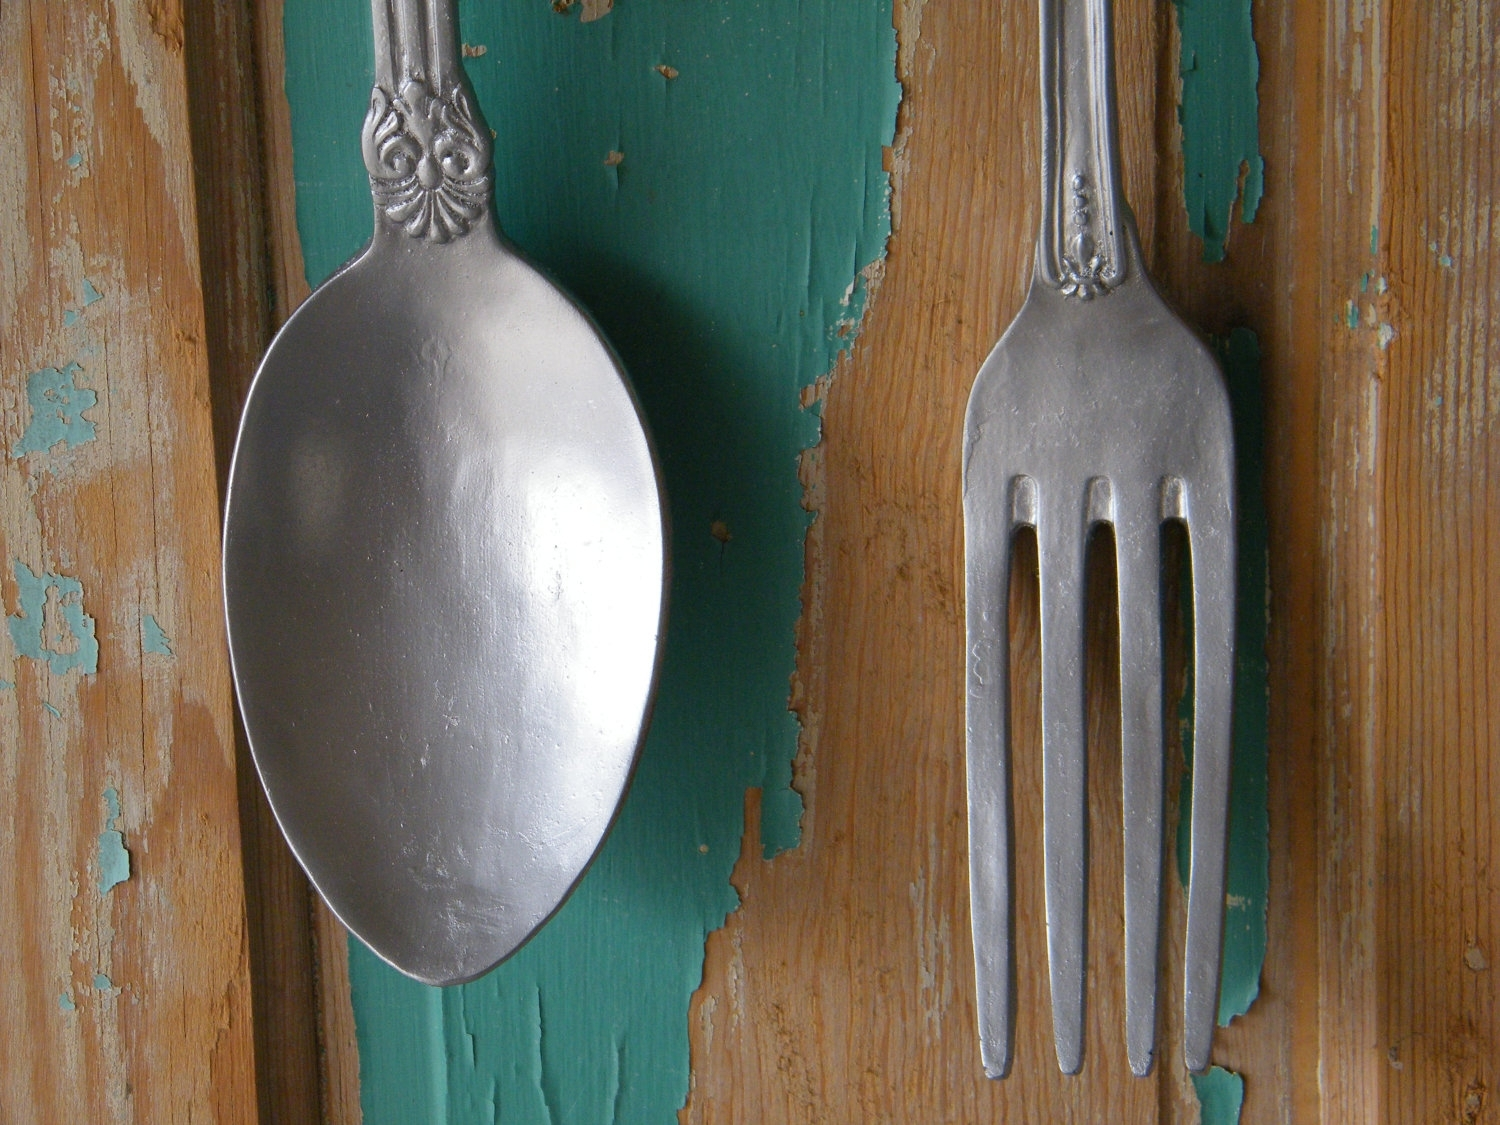 Wall Art Oversize Fork Spoon Chrome Silver Morrelldecor – Home With Most Up To Date Fork And Spoon Wall Art (View 20 of 20)